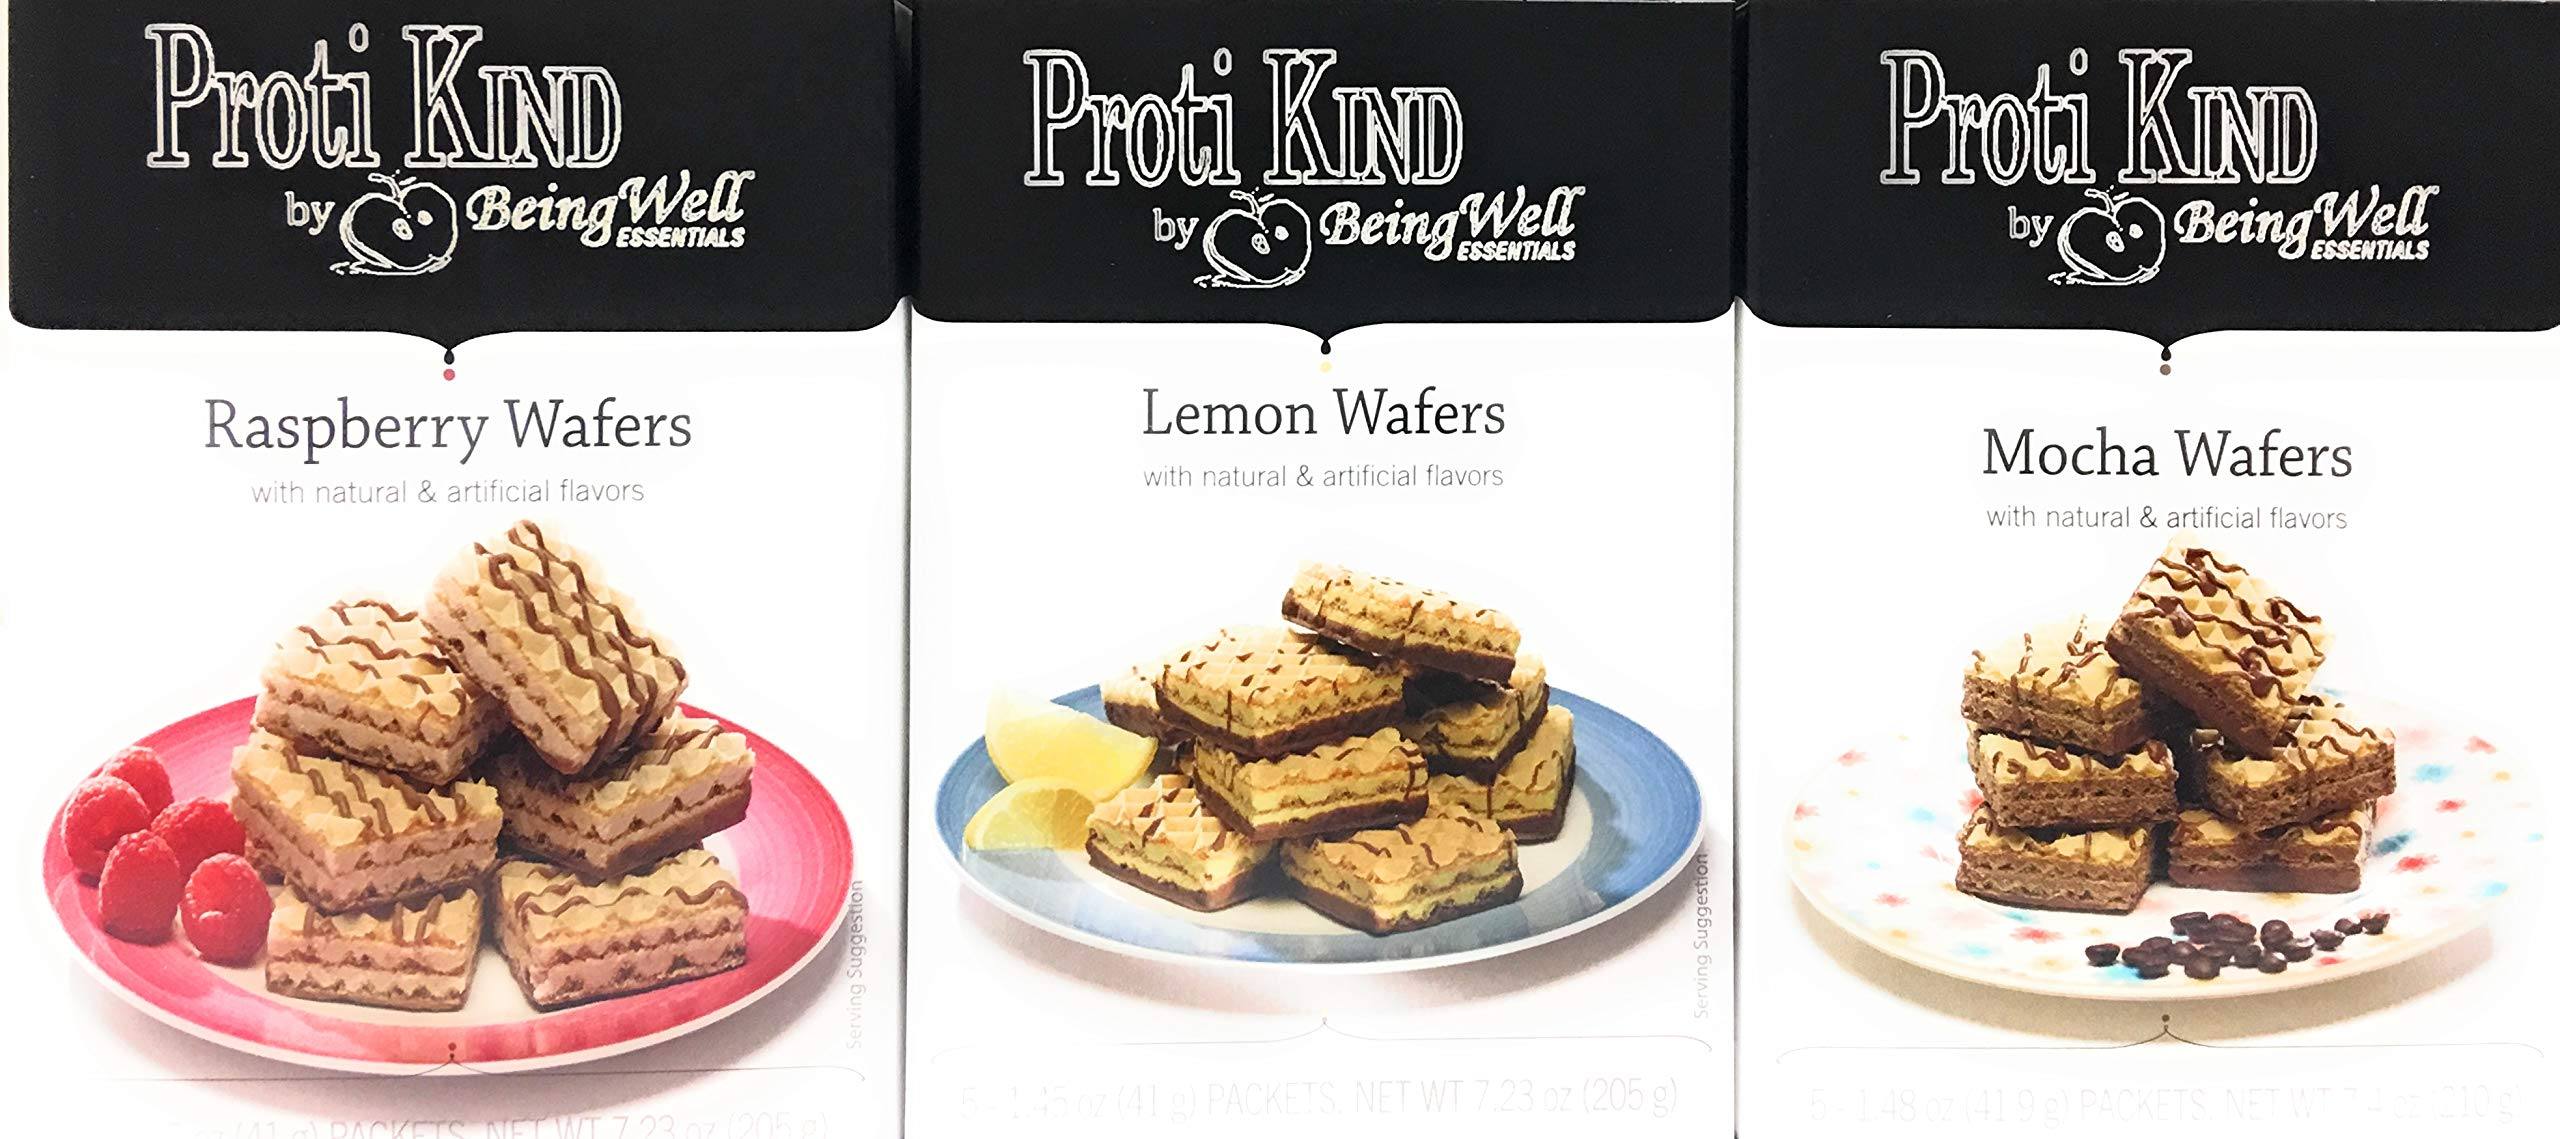 Proti Kind - High Protein Diet Wafer Squares Variety Pack - one Box Each of Three Different Flavors 15 Servings, 30 wafers (Mocha, Raspberry & Lemon)